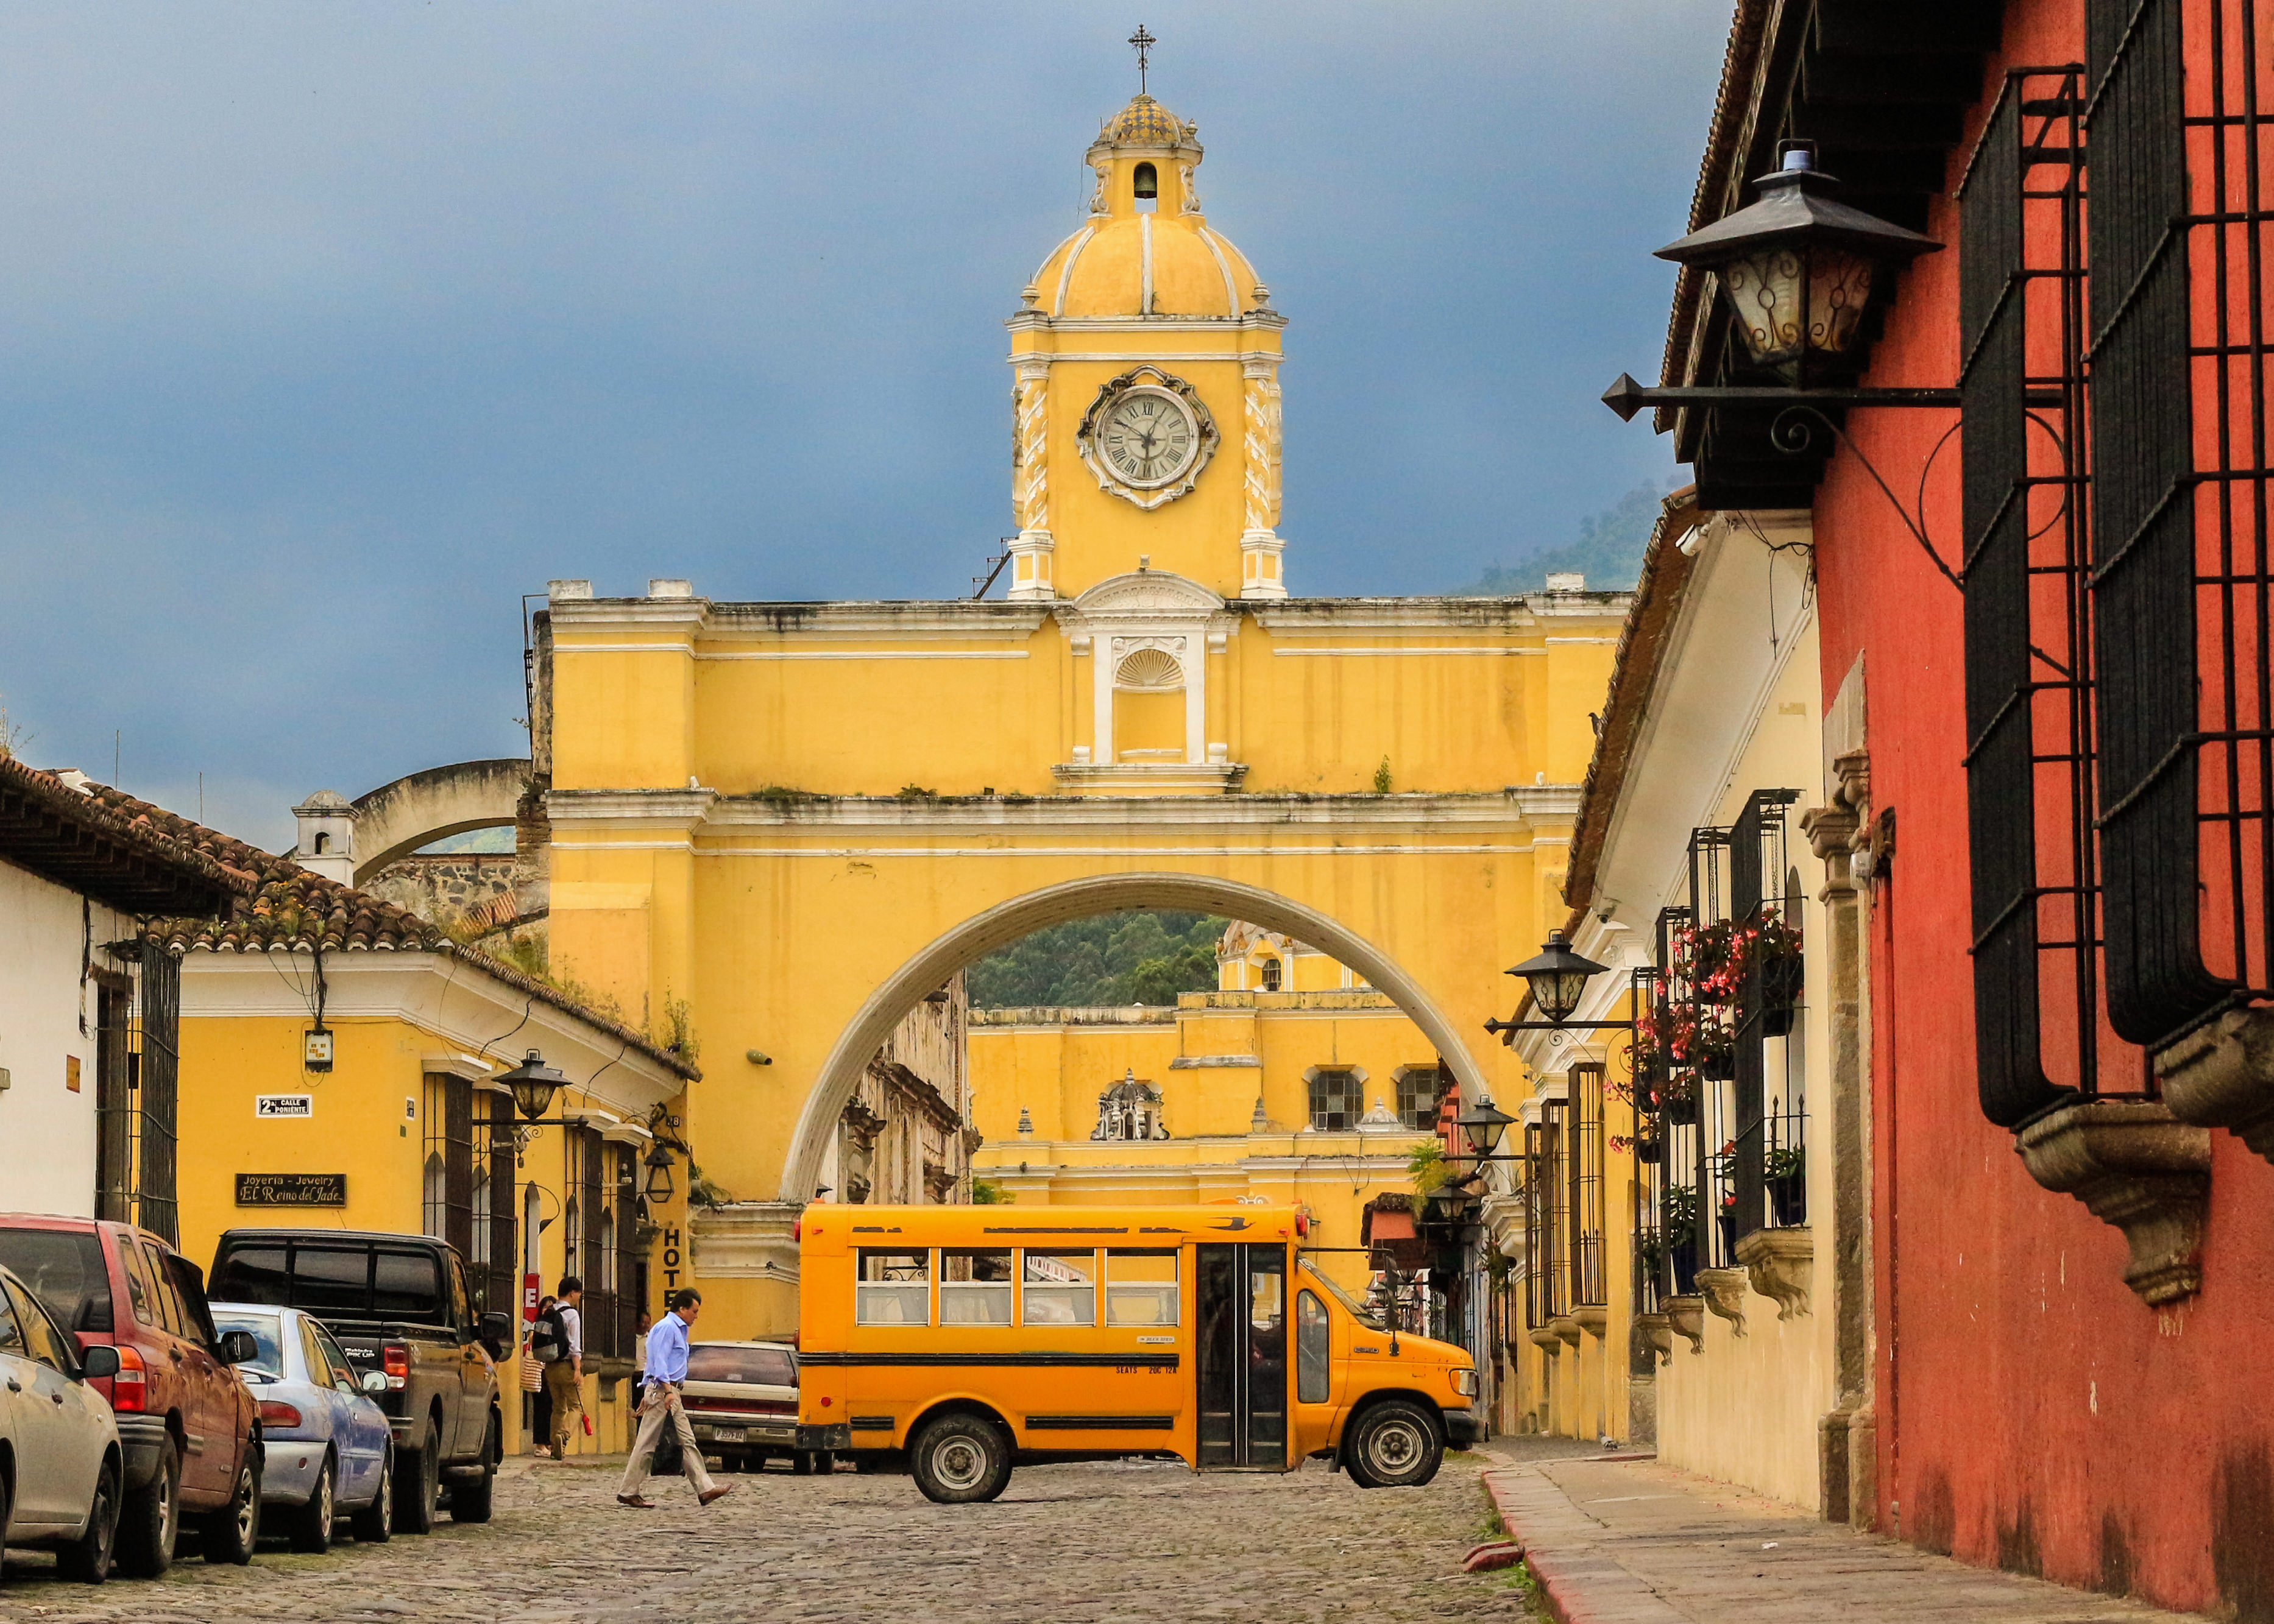 Streets of Antigua Guatemala with Arco de Santa Catalina arch and a yellow school bus.